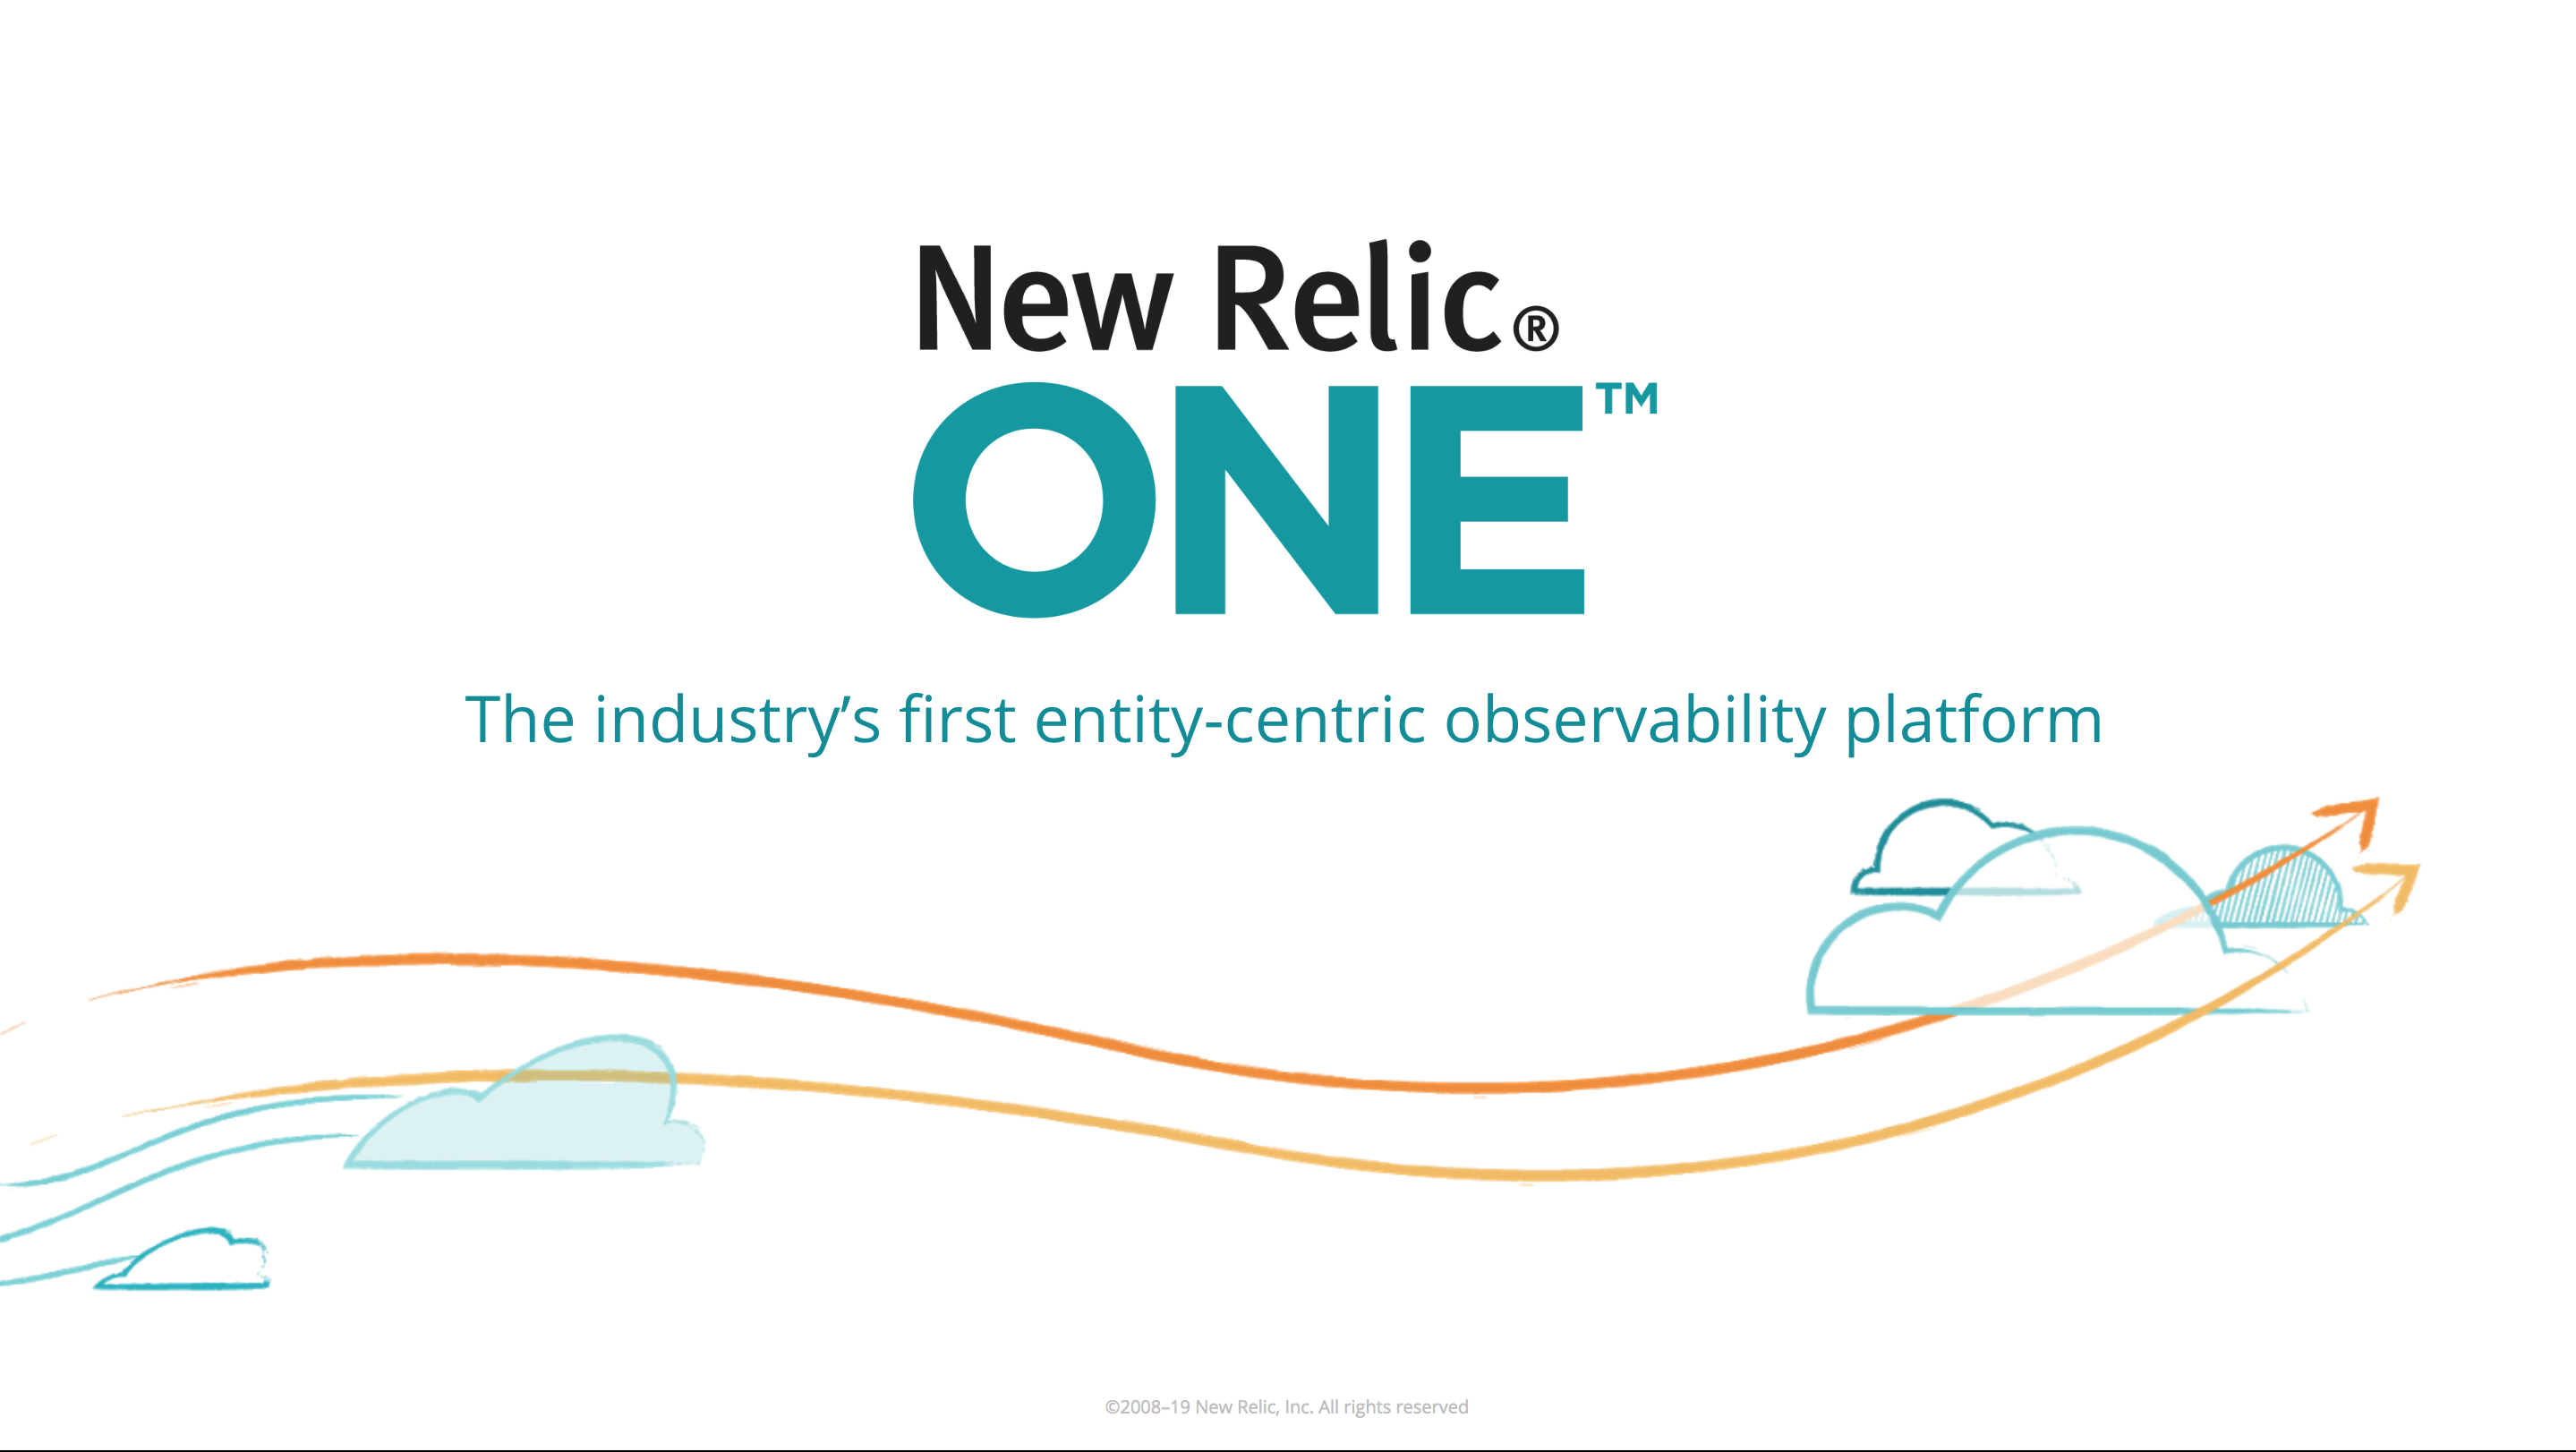 New Relic One